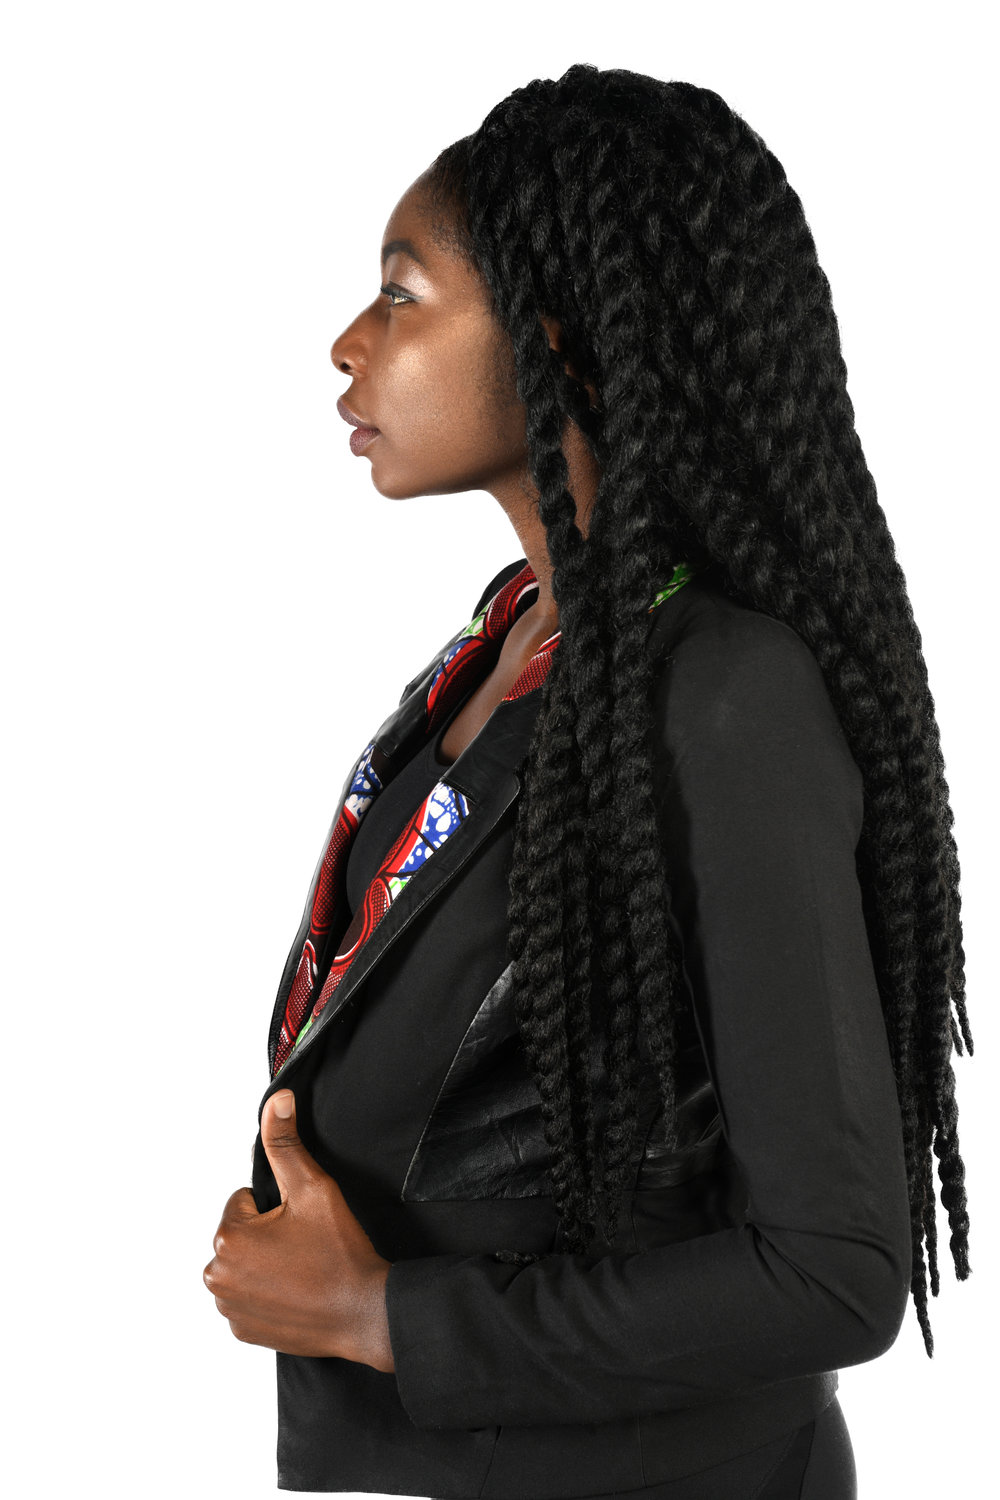 Profile of African American Businesswoman.jpg